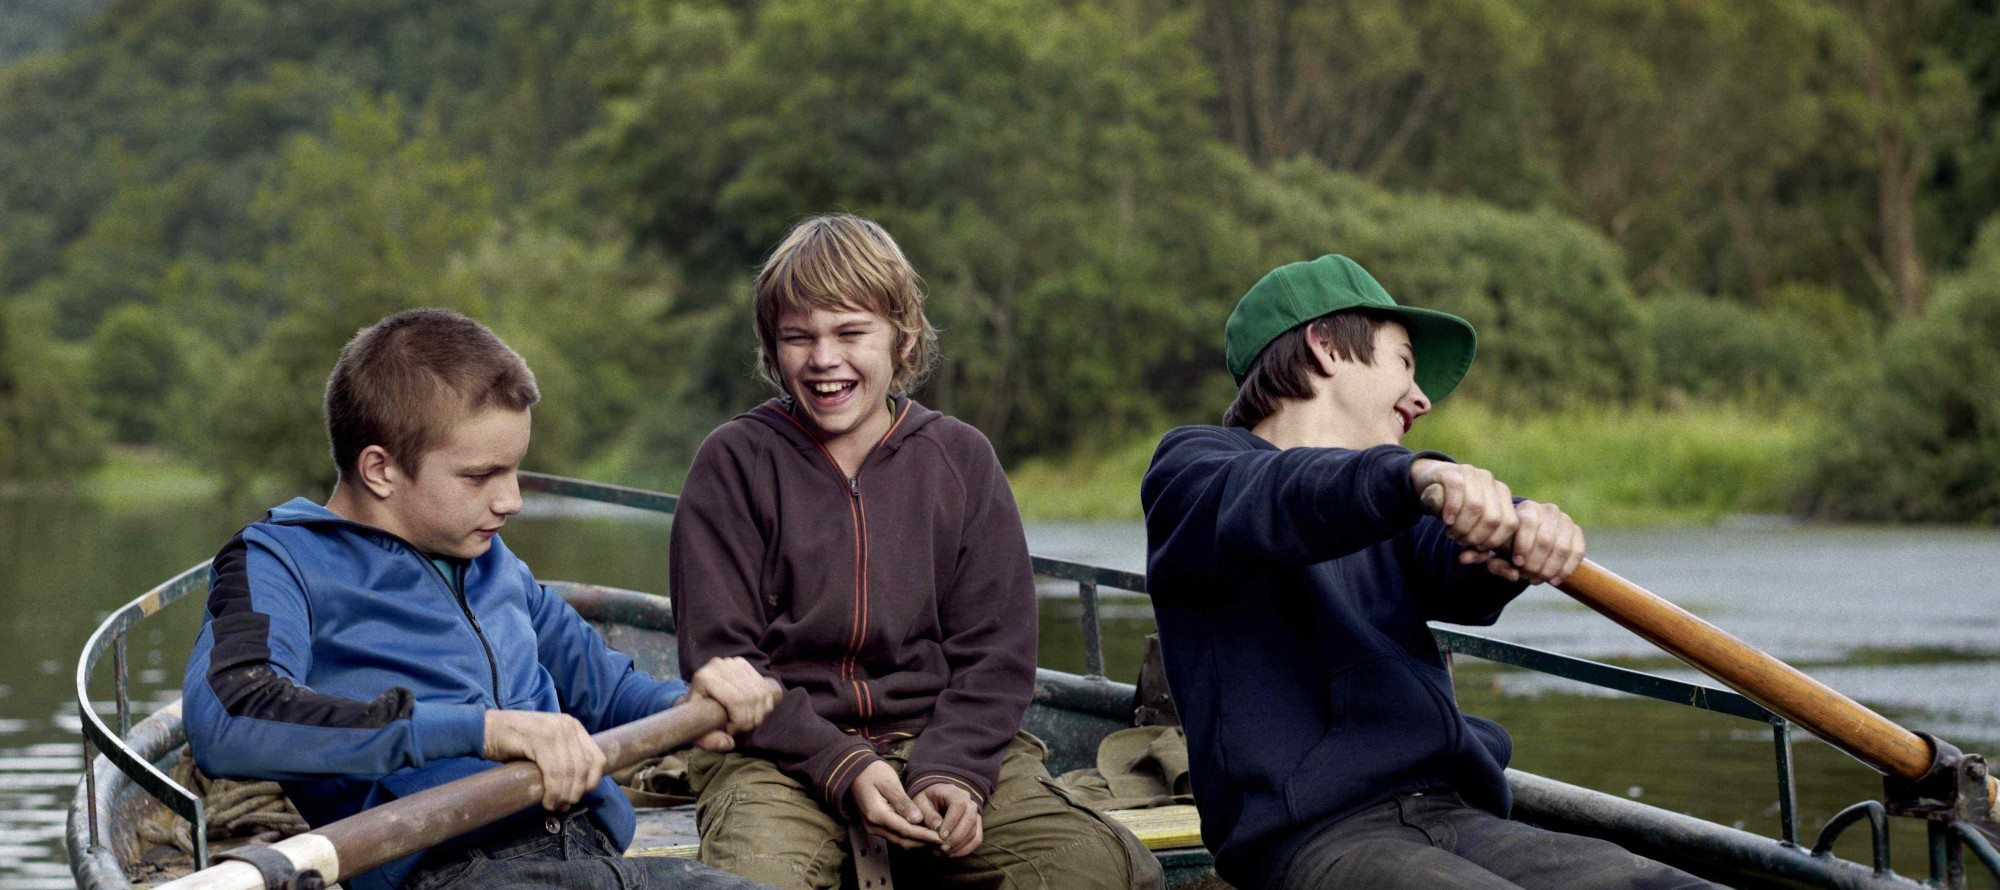 FILM PREVIEW: The Giants is an eerie and intense coming of age story